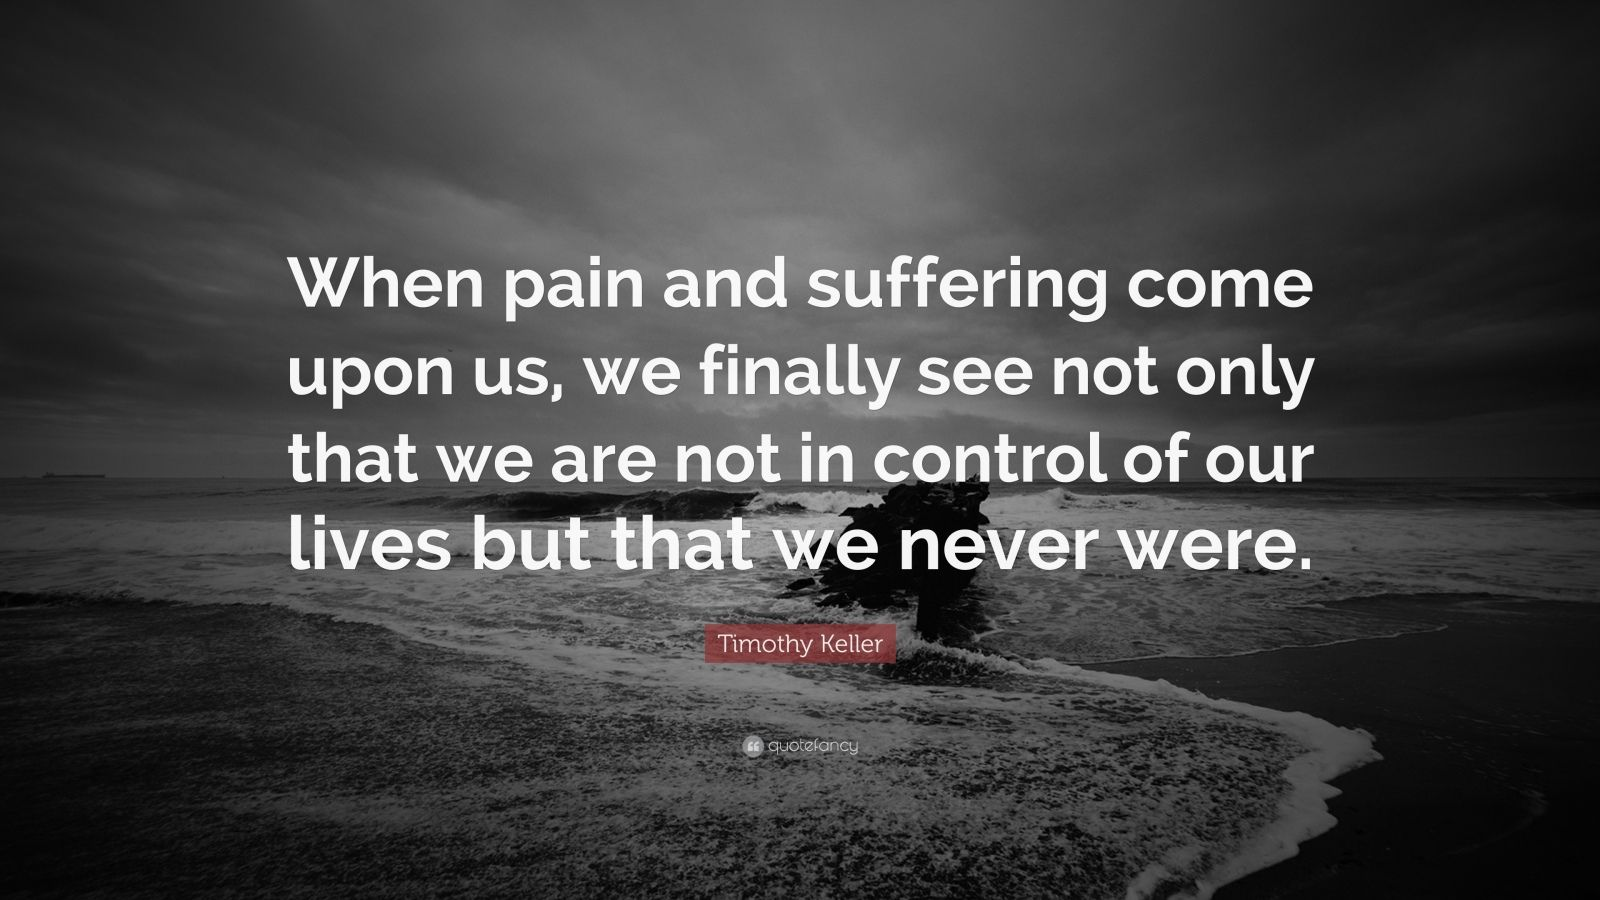 """Timothy Keller Quote: """"When pain and suffering come upon us, we finally see not only that we are not in control of our lives but that we never were."""""""